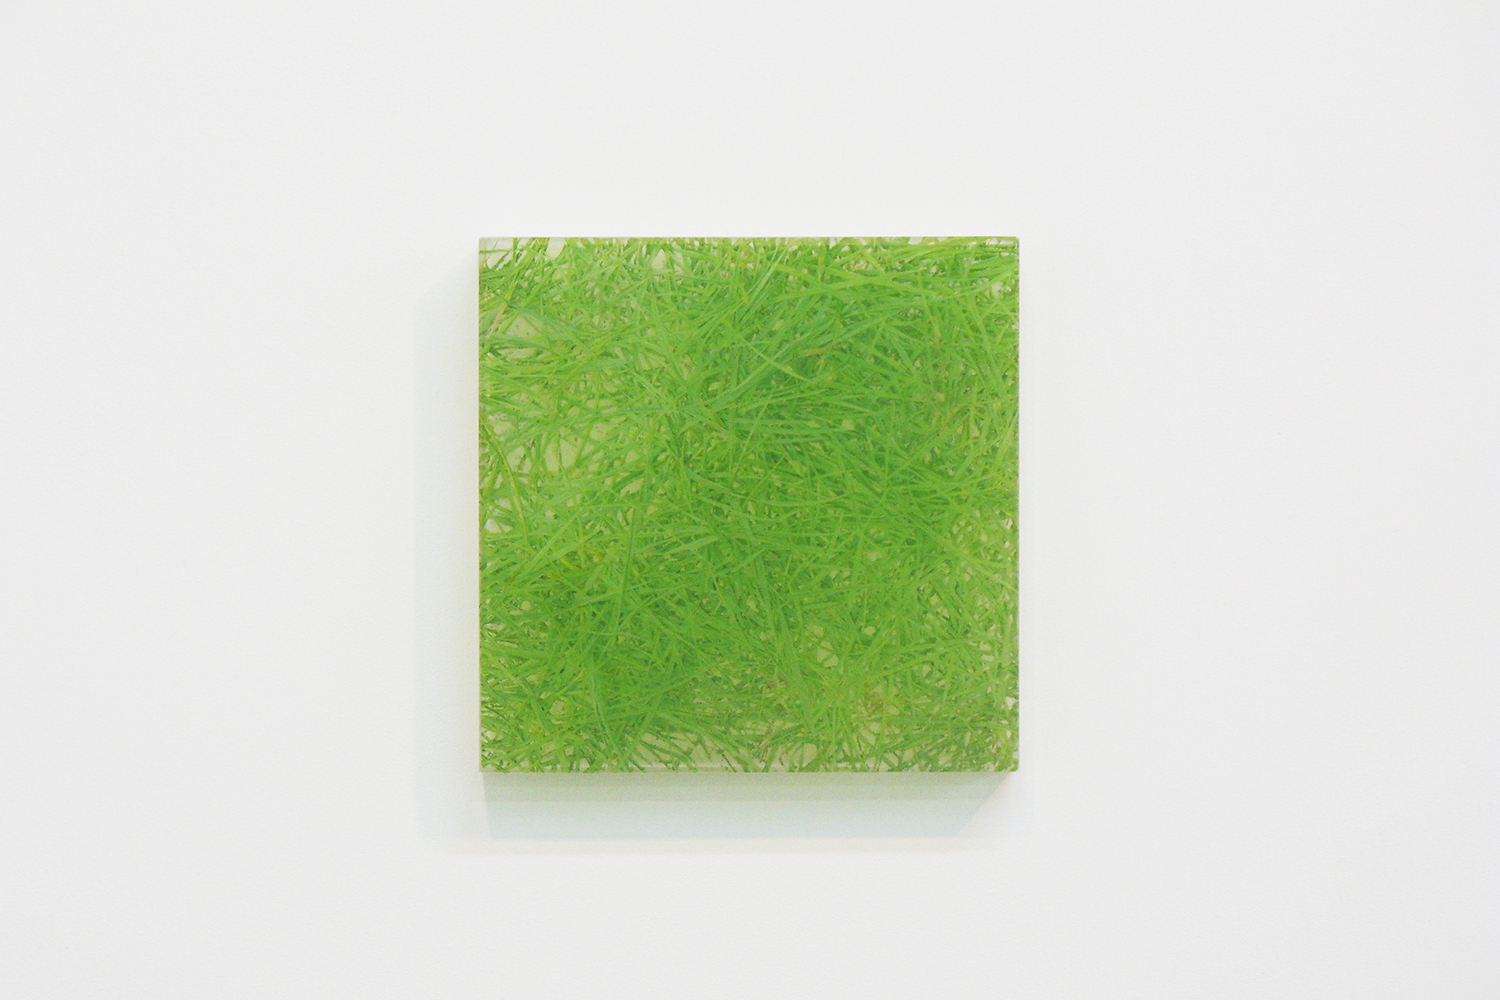 Photo painting [叢 grass 06-10.12],  oil on polyester resin panel and mixed media, 22.6 × 22.6 cm, 2006